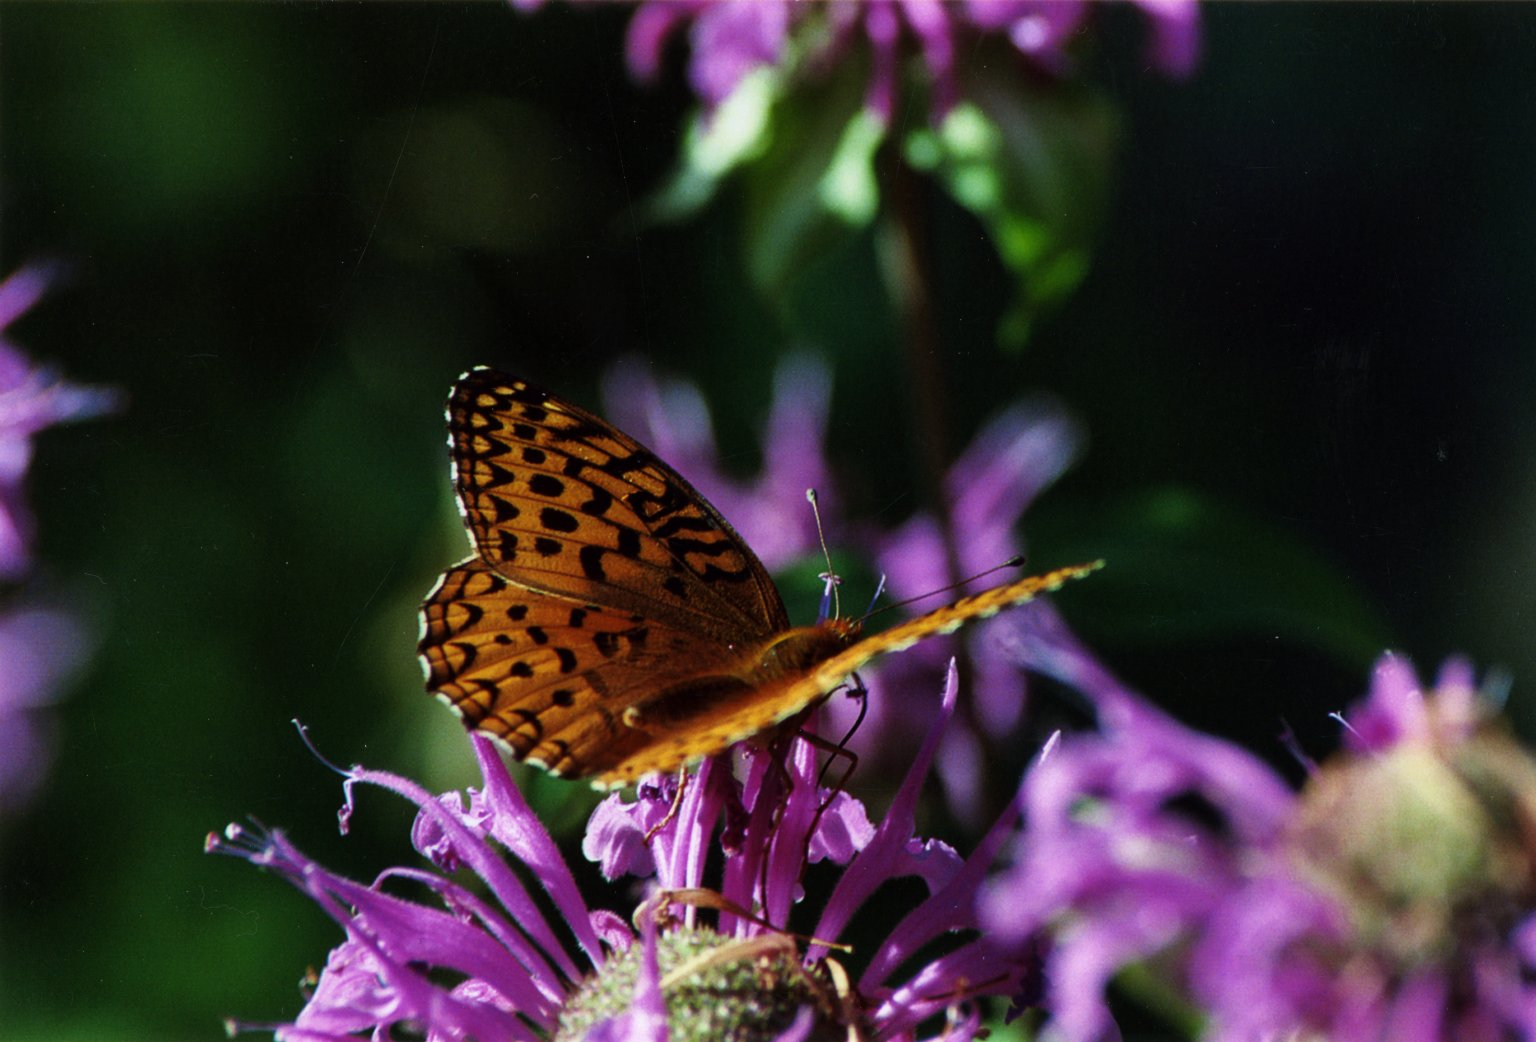 Close up of orange butterfly on purple flowers